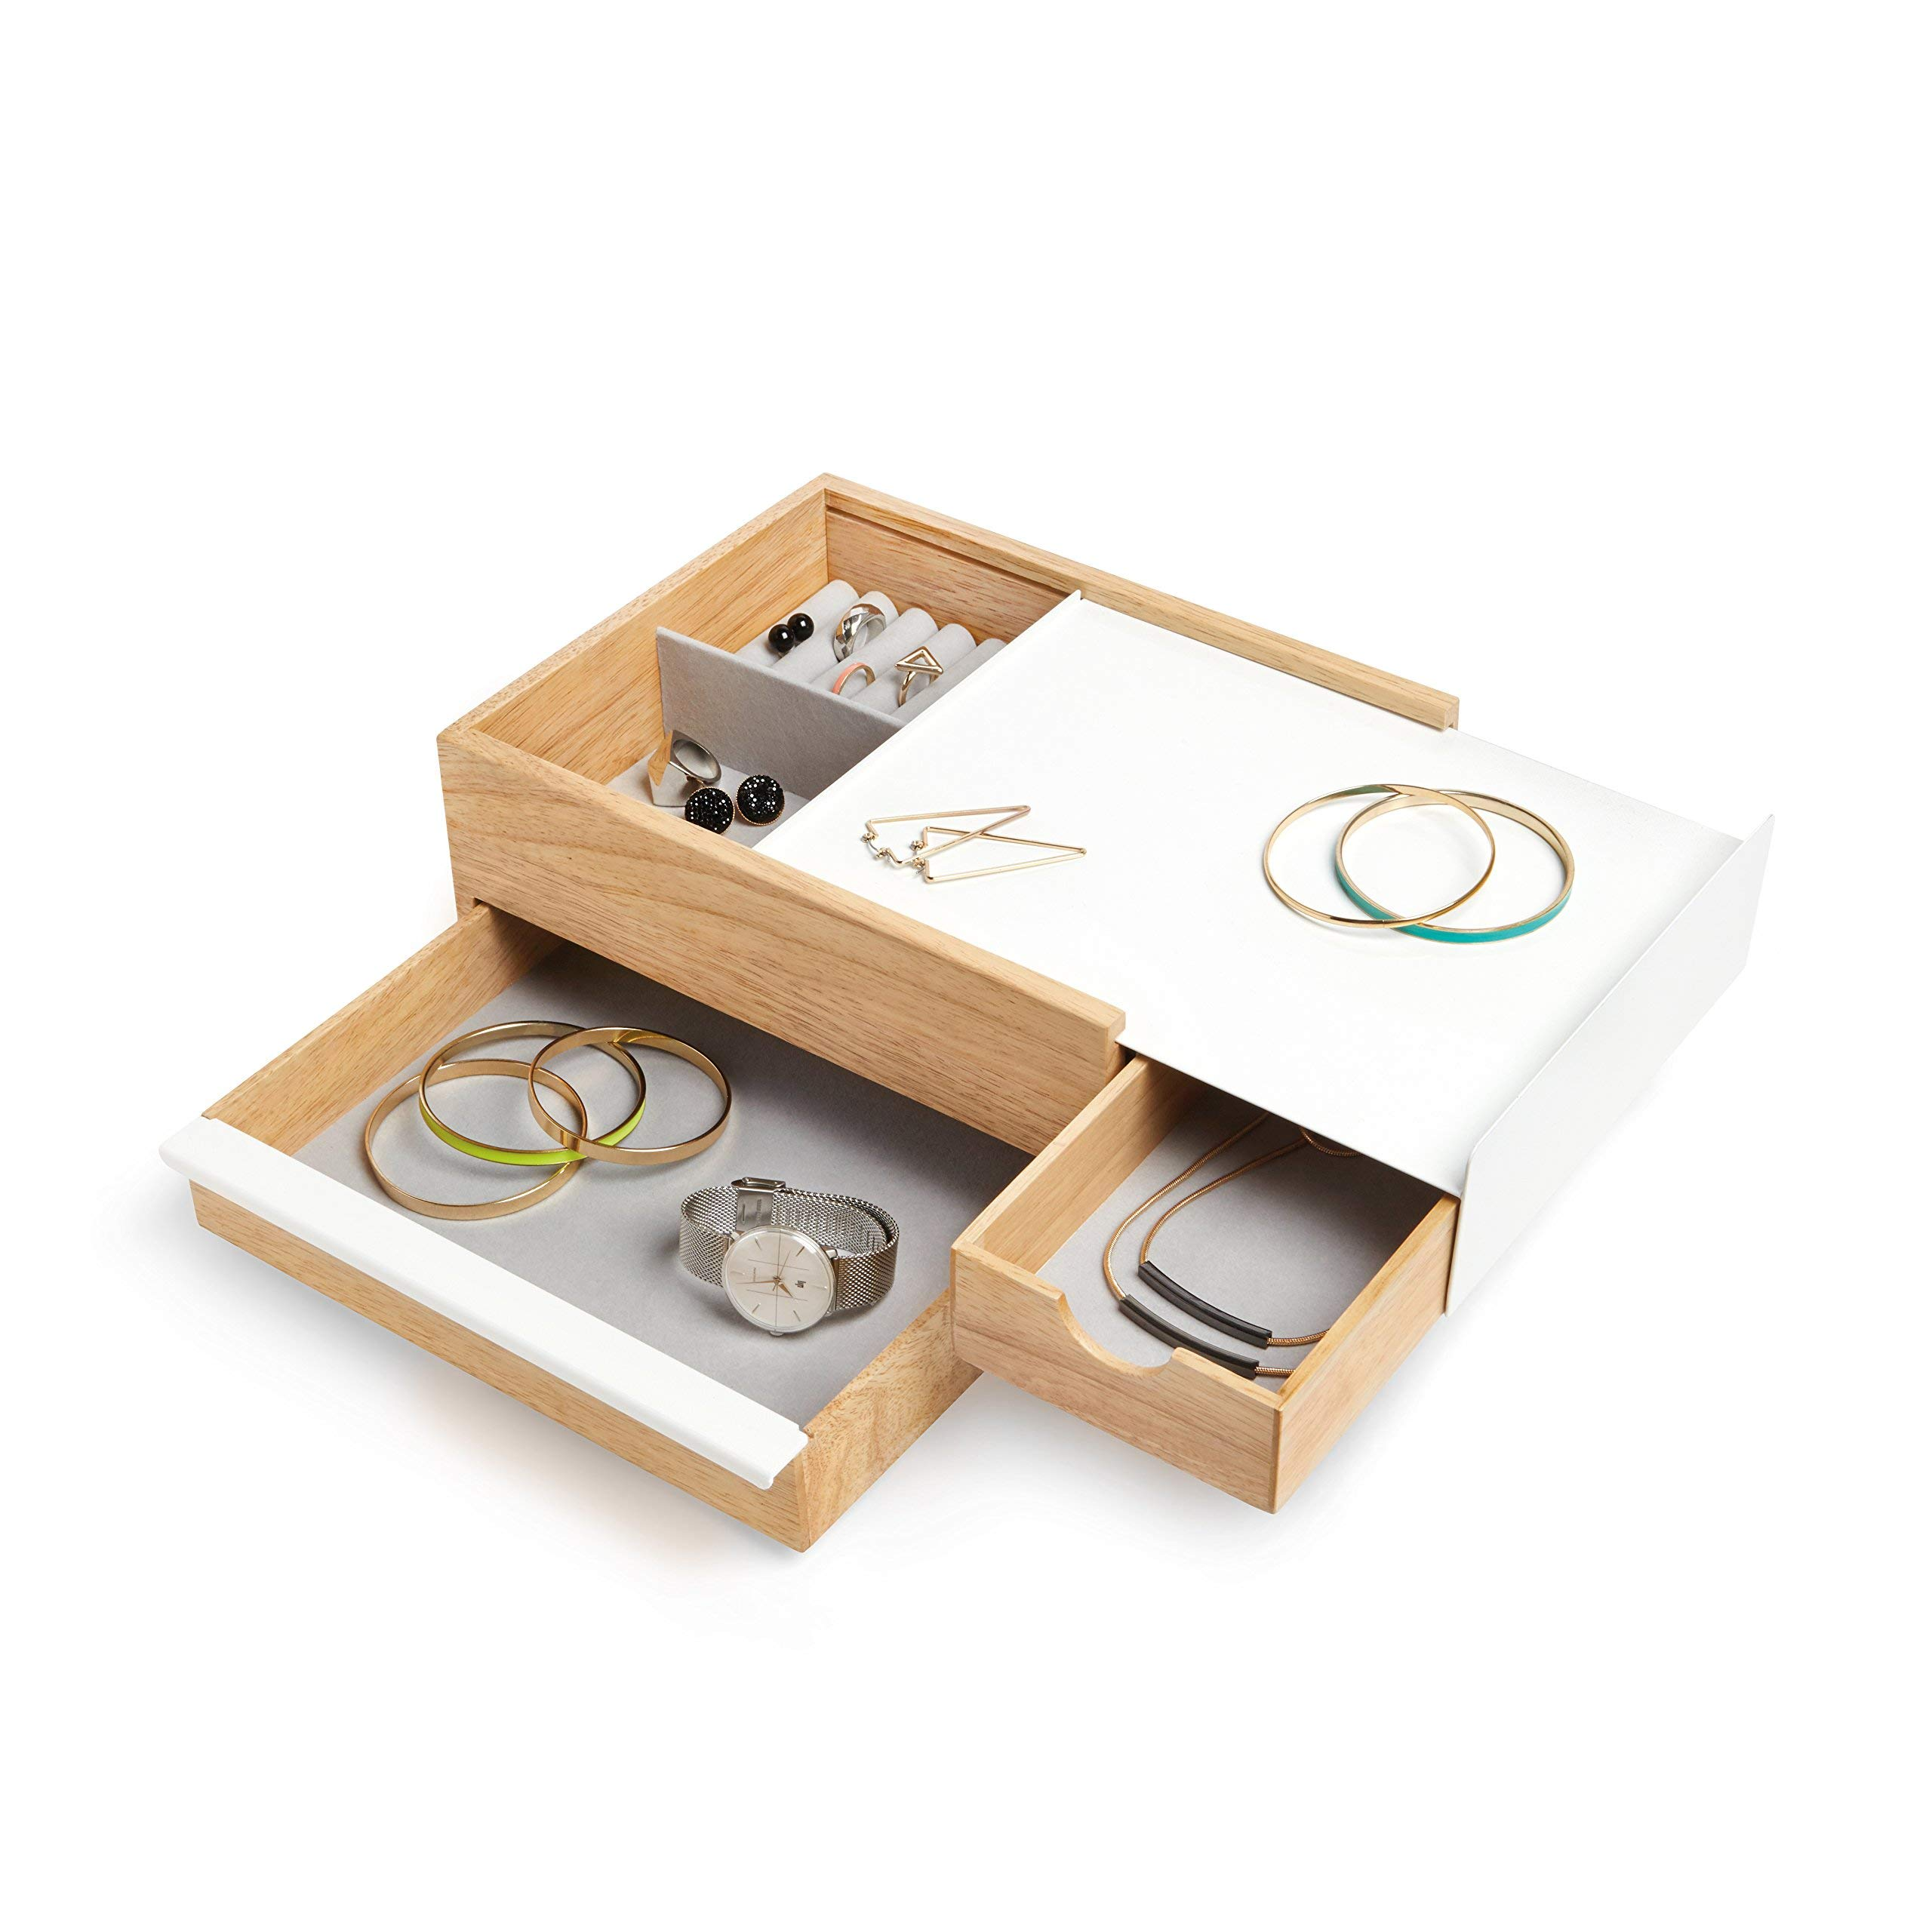 Umbra Stowit Jewelry Box - Modern Keepsake Storage Organizer with Hidden Compartment Drawers for Ring, Bracelet, Watch, Necklace, Earrings, and Accessories (White / Natural) by Umbra